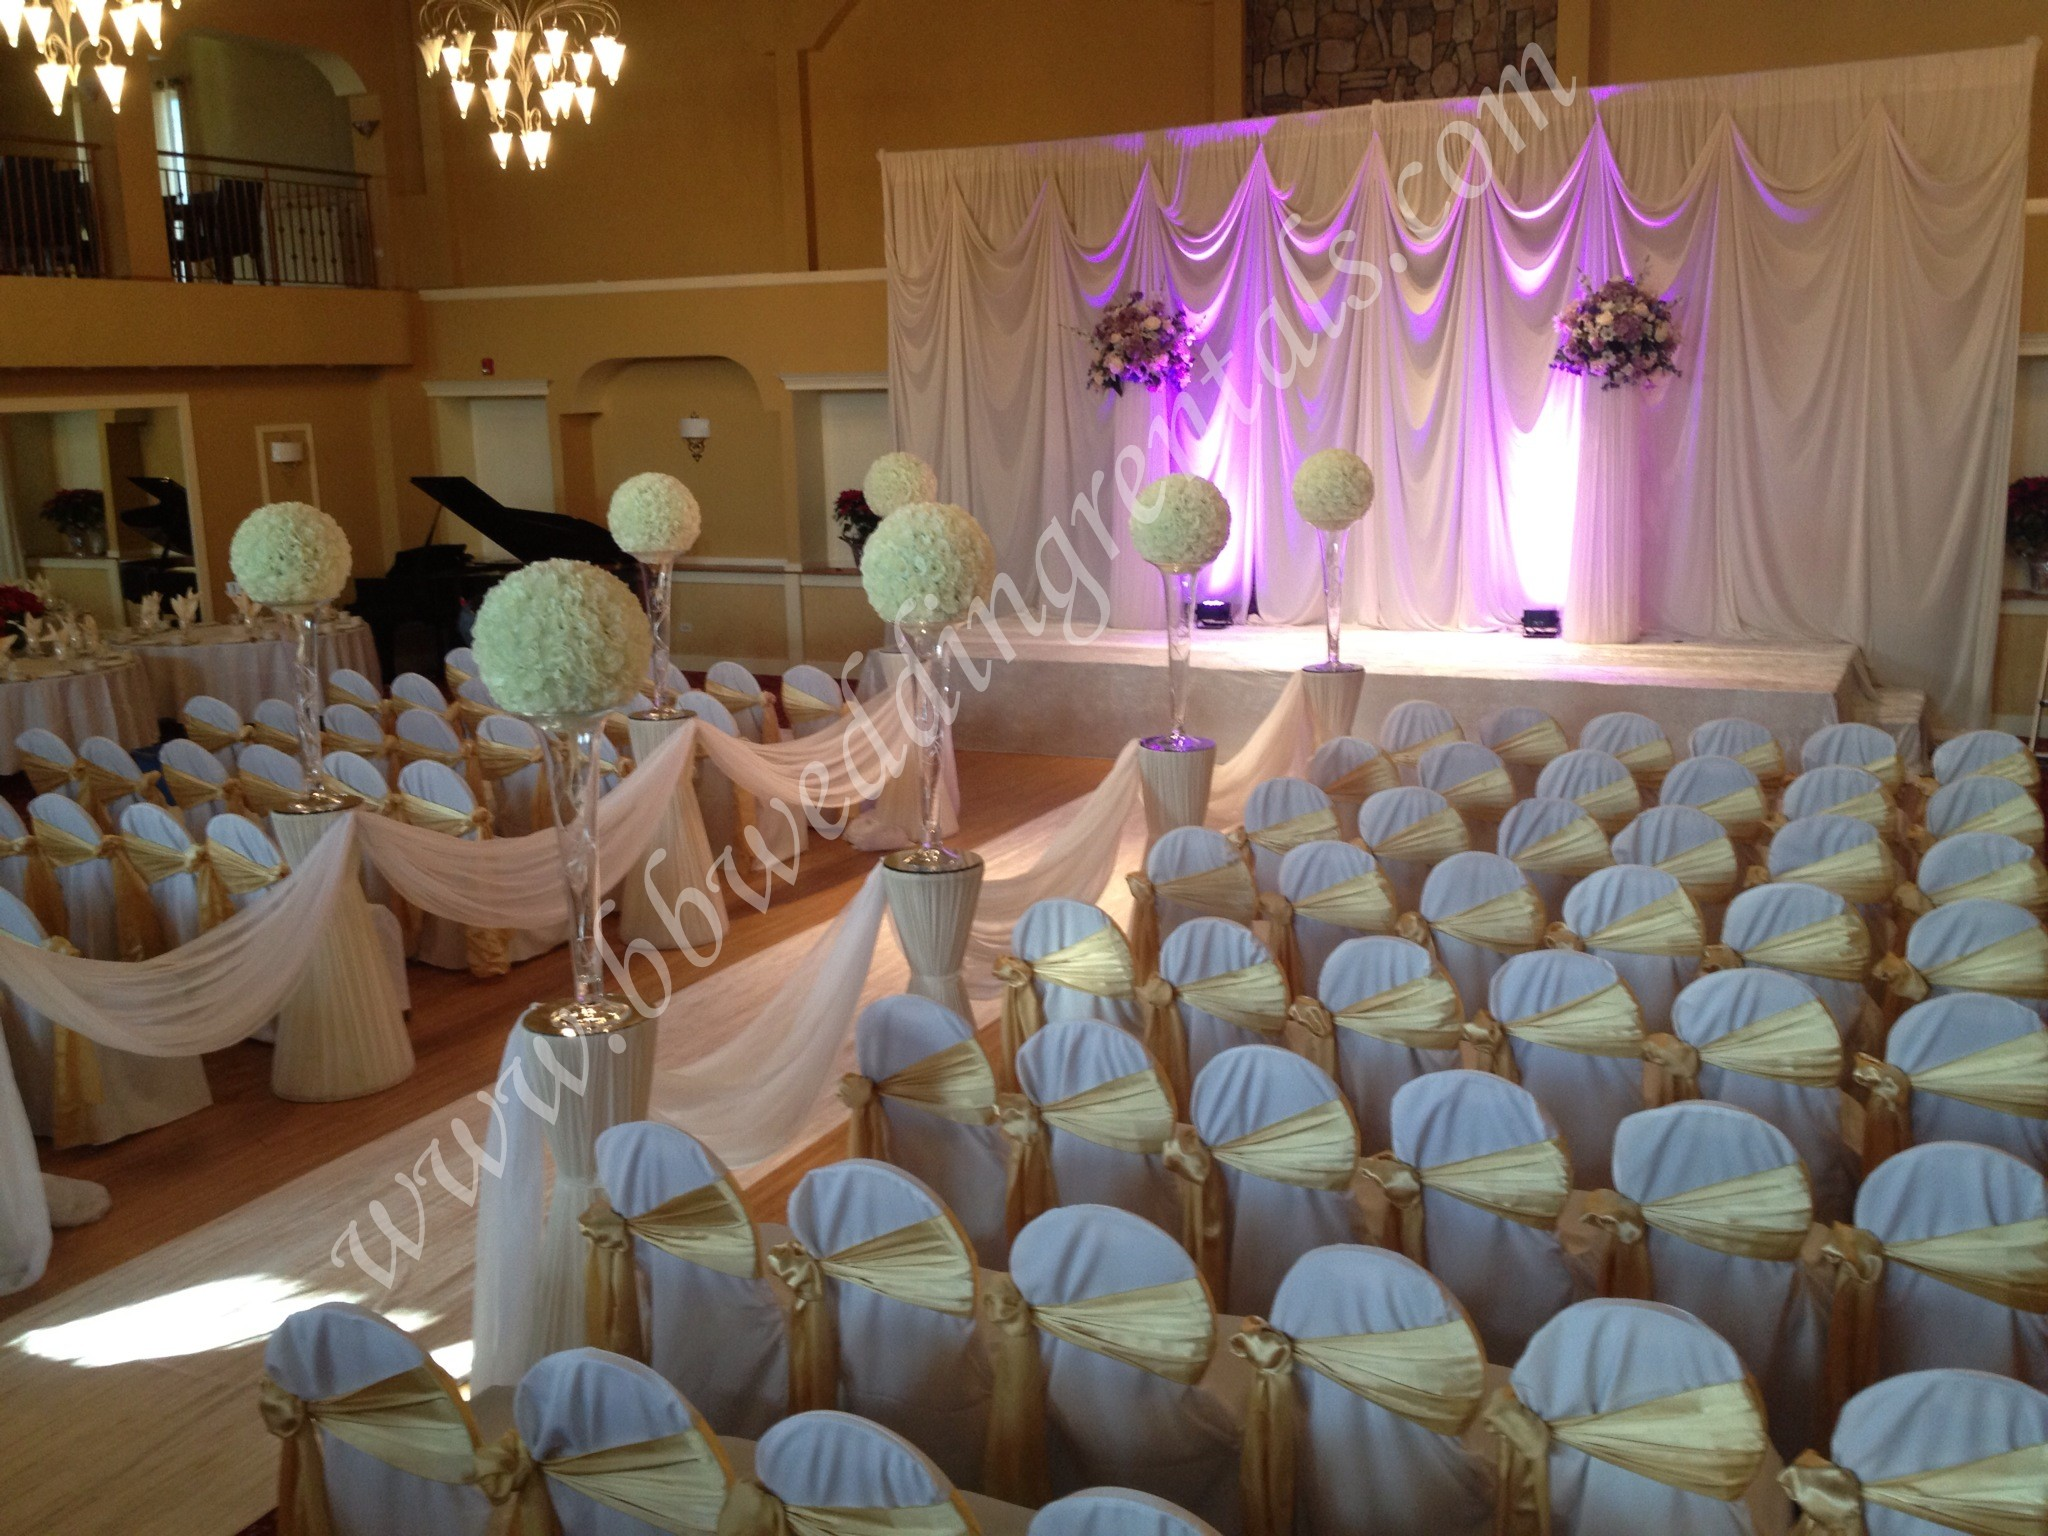 Chair Covers Chicago BB Chair Covers Gallery BB Chair Covers Rental